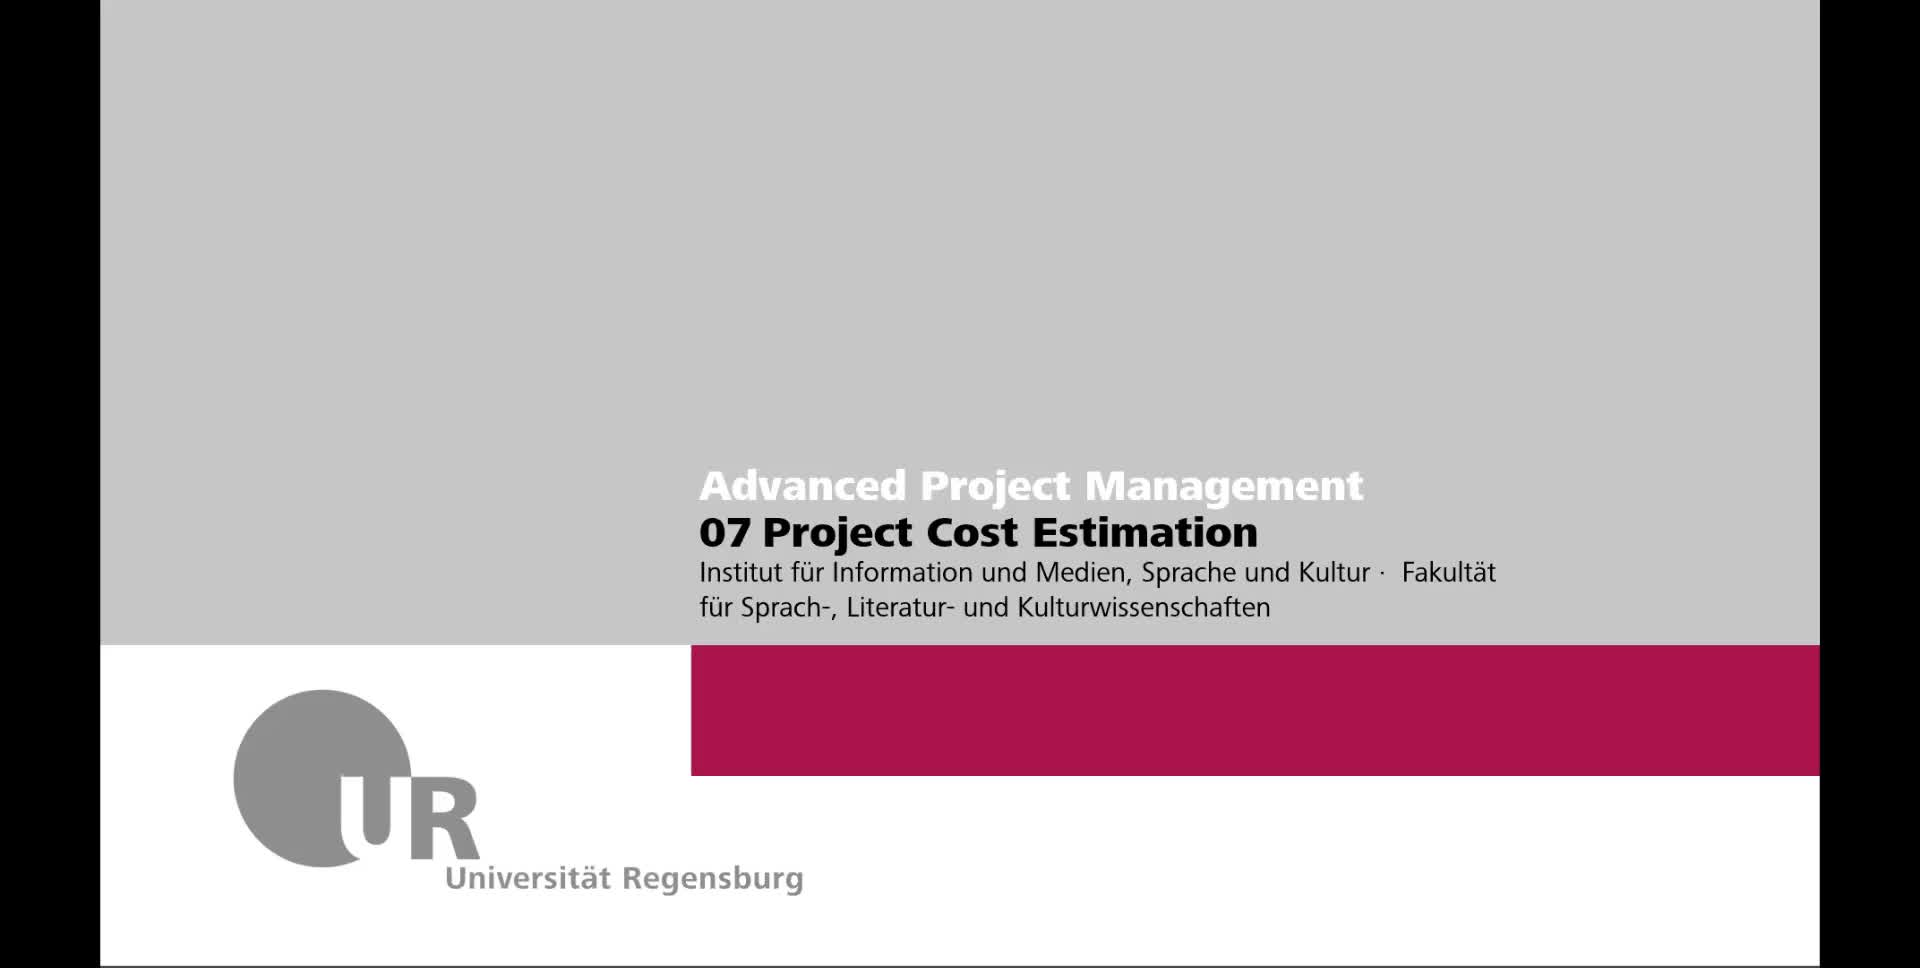 Advanced IT Project Management WS 2021: 07a Cost Estimation